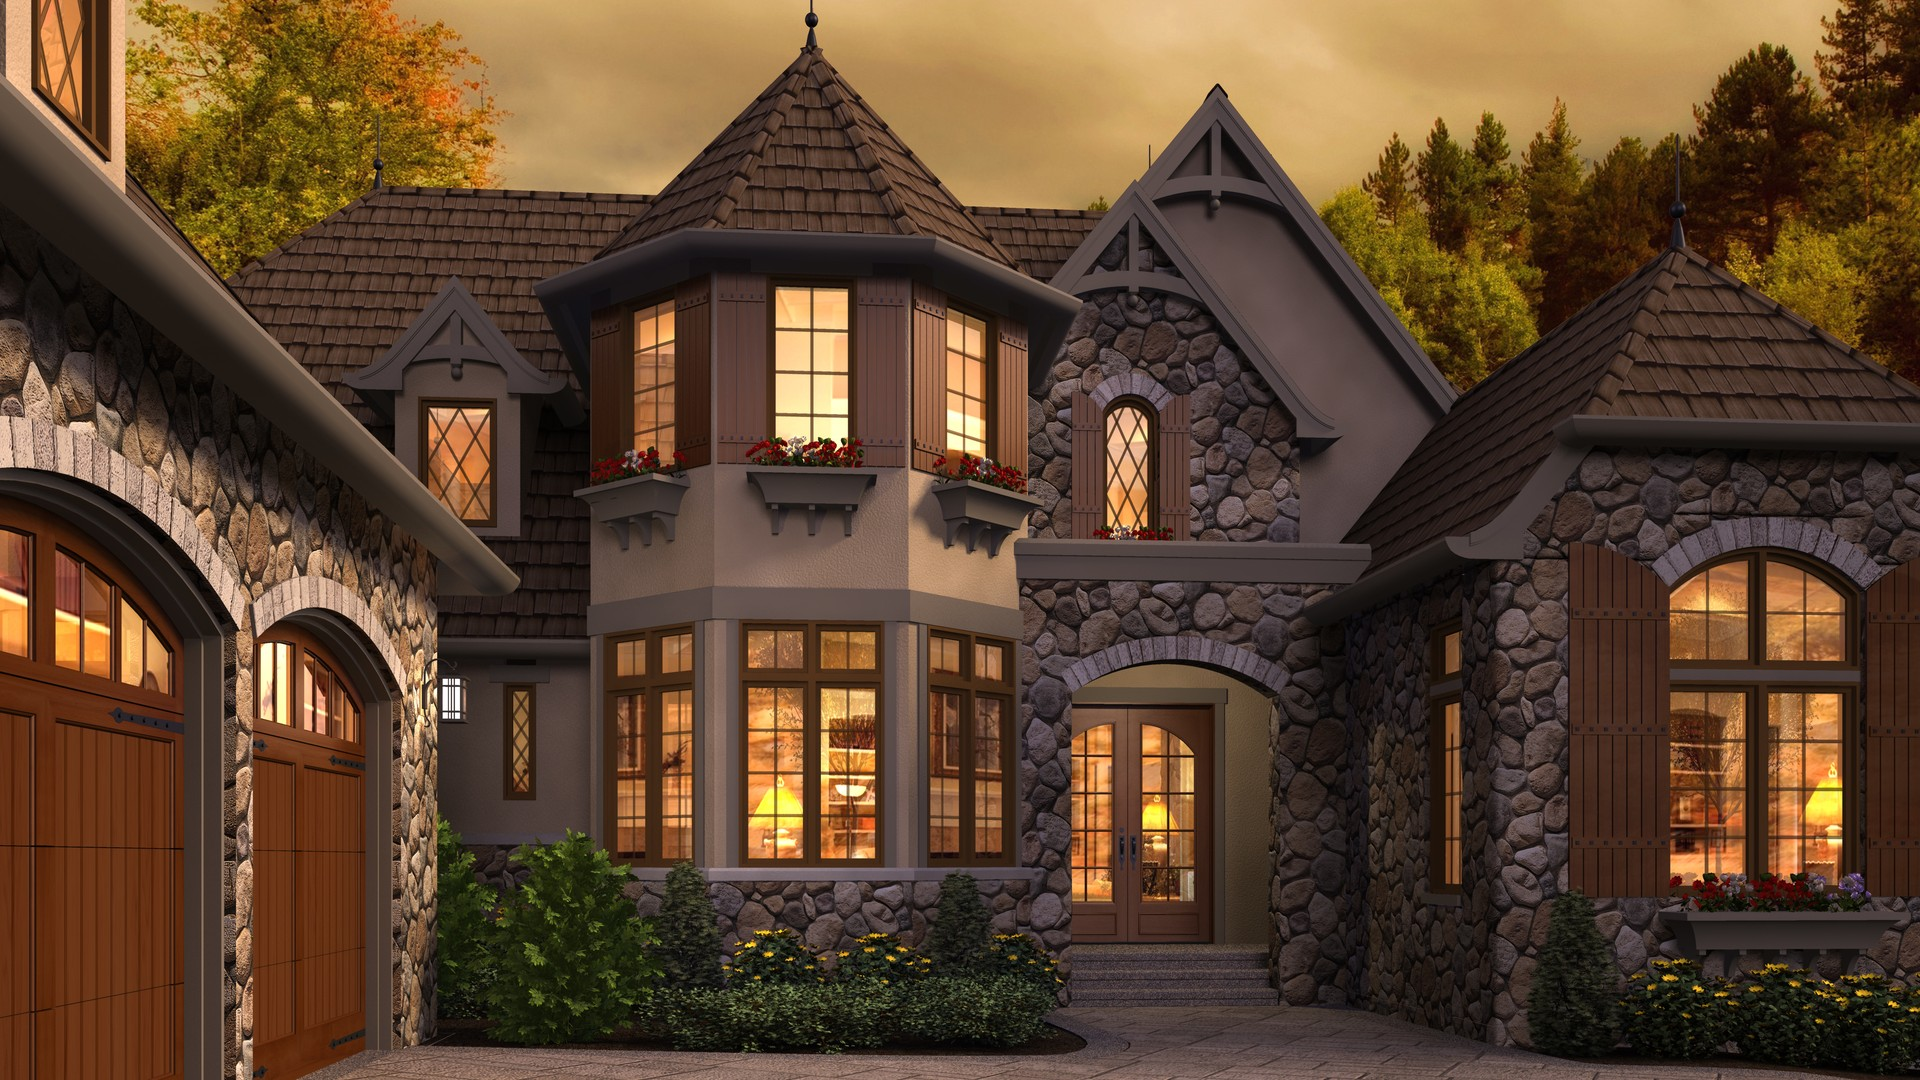 Cottage house plan 2470 the rivendell manor 4142 sqft 3 for Rivendell cottage house plans